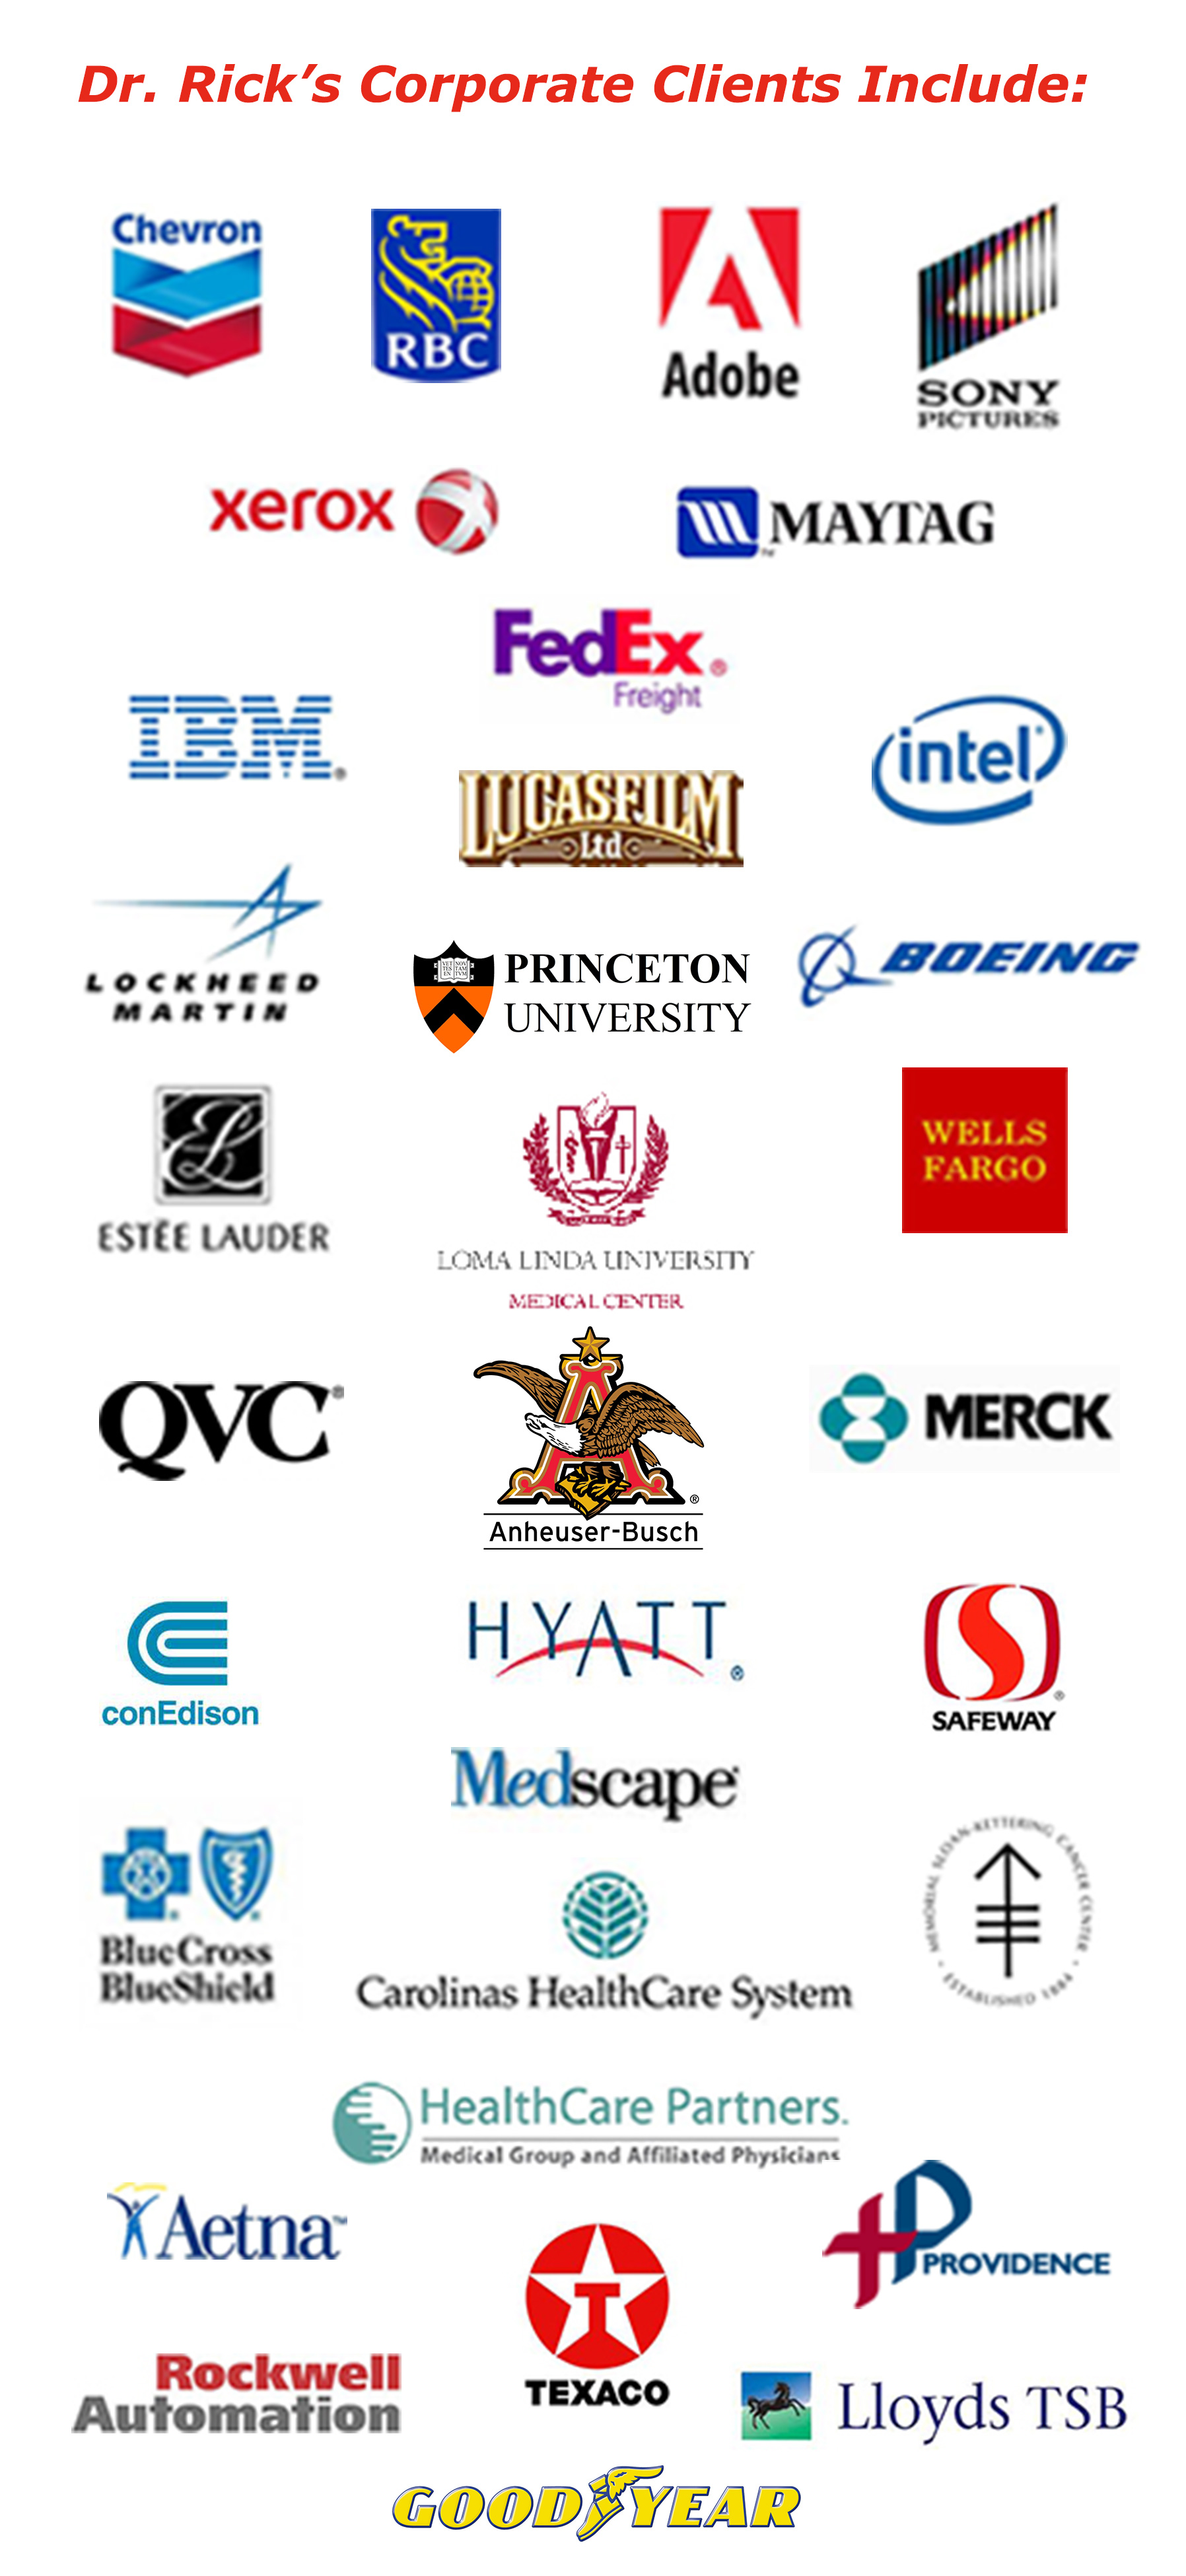 Client-Logos-CORPORATE-vertical.jpg